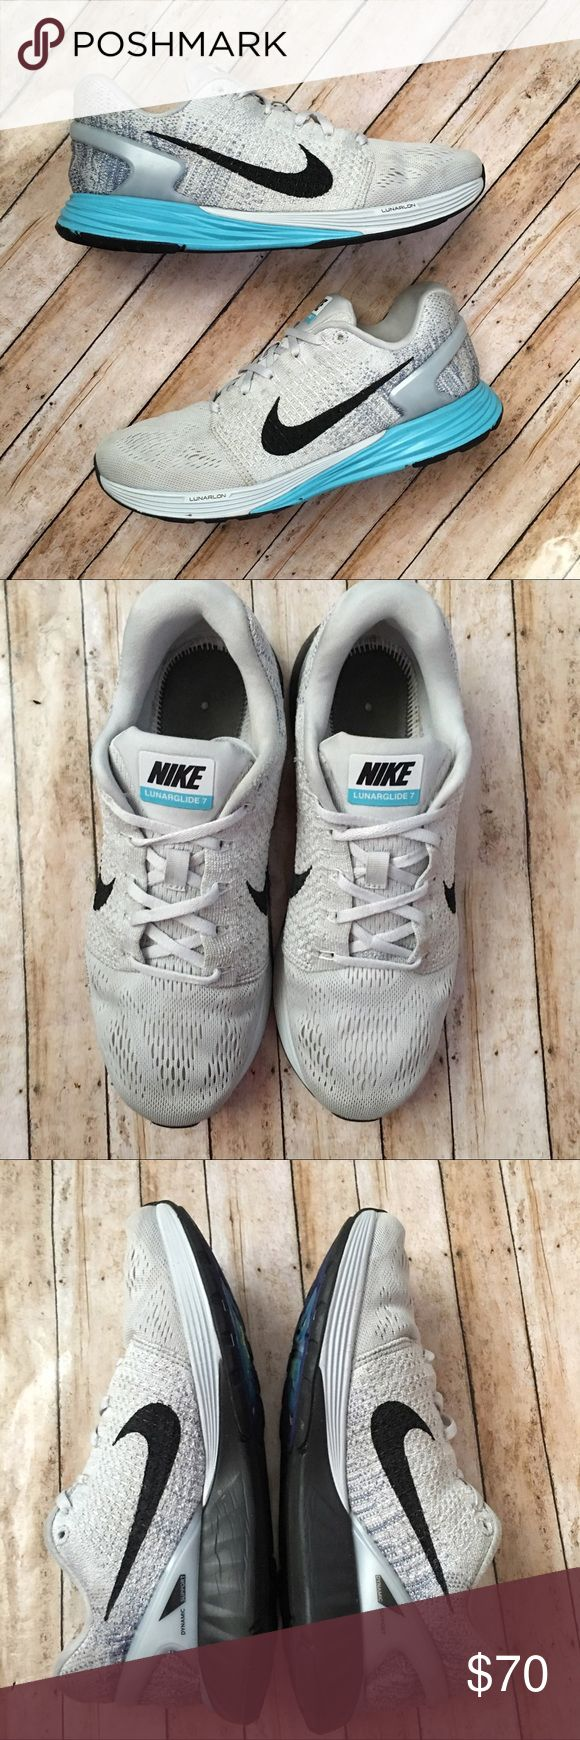 Nike LunarGlide 7 Nike LunarGlide 7 in Pure Platinum/ Gamma Blue/ Ocean Fog/ Black. Minor signs of wear. Insoles removed to use my own and didn't keep originals. Add your own or just as comfy without. Size 9.5 Nike Shoes Athletic Shoes